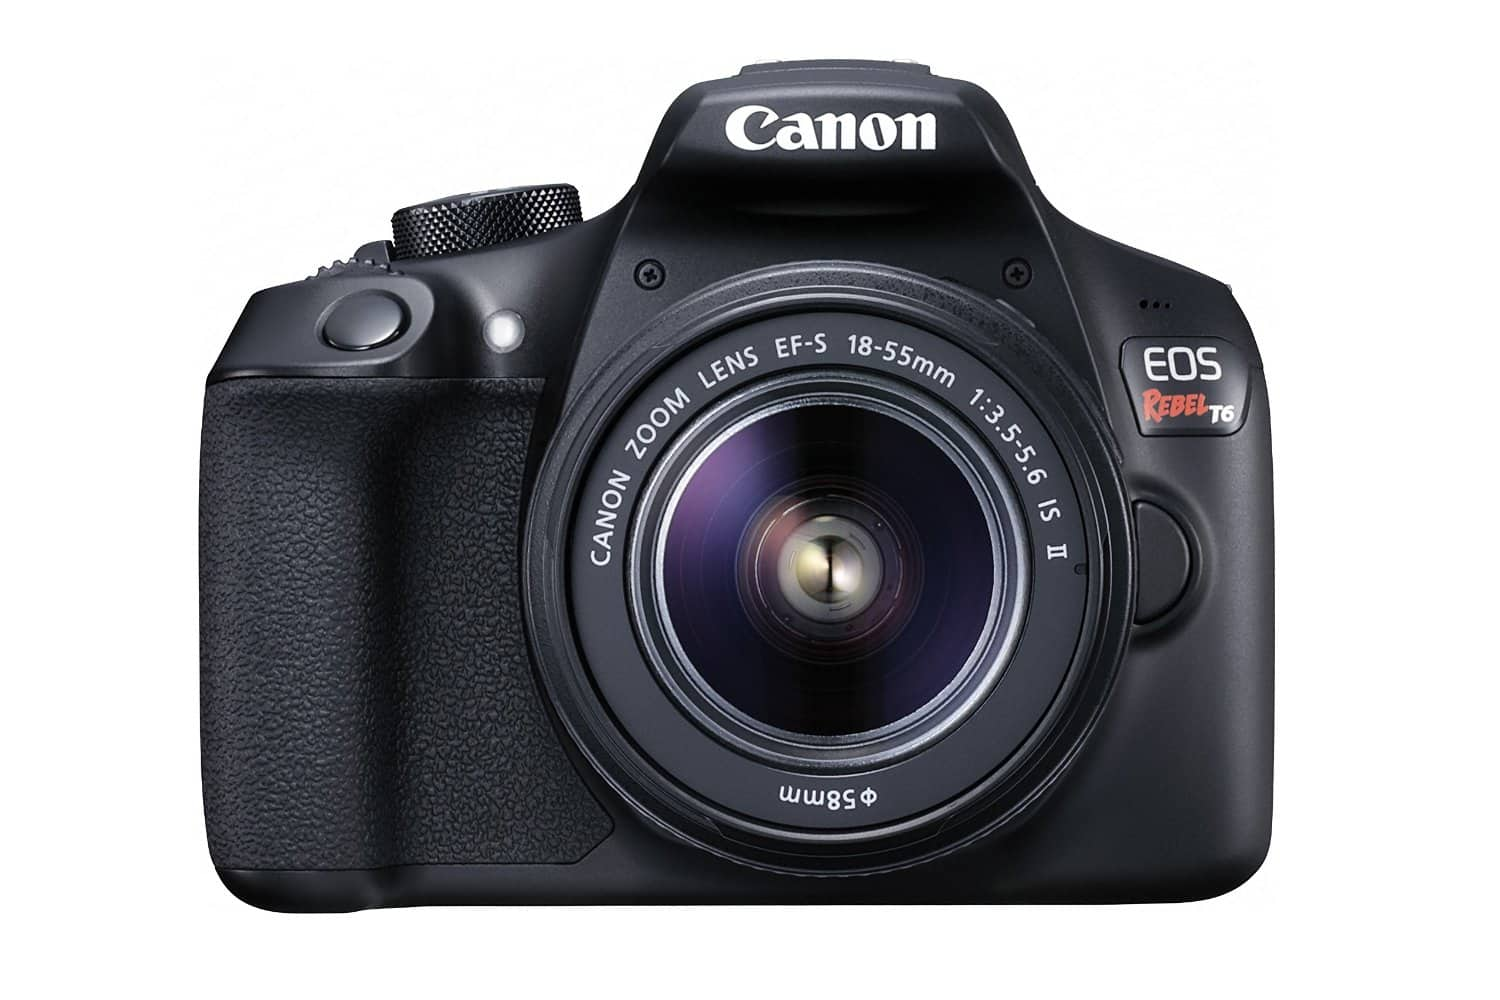 Amazon.com Rewards Visa Card !!! Canon EOS Rebel T6 Digital SLR Camera Kit with EF-S 18-55mm f/3.5-5.6 IS II Lens (Black) $399.00 fs @ amazon